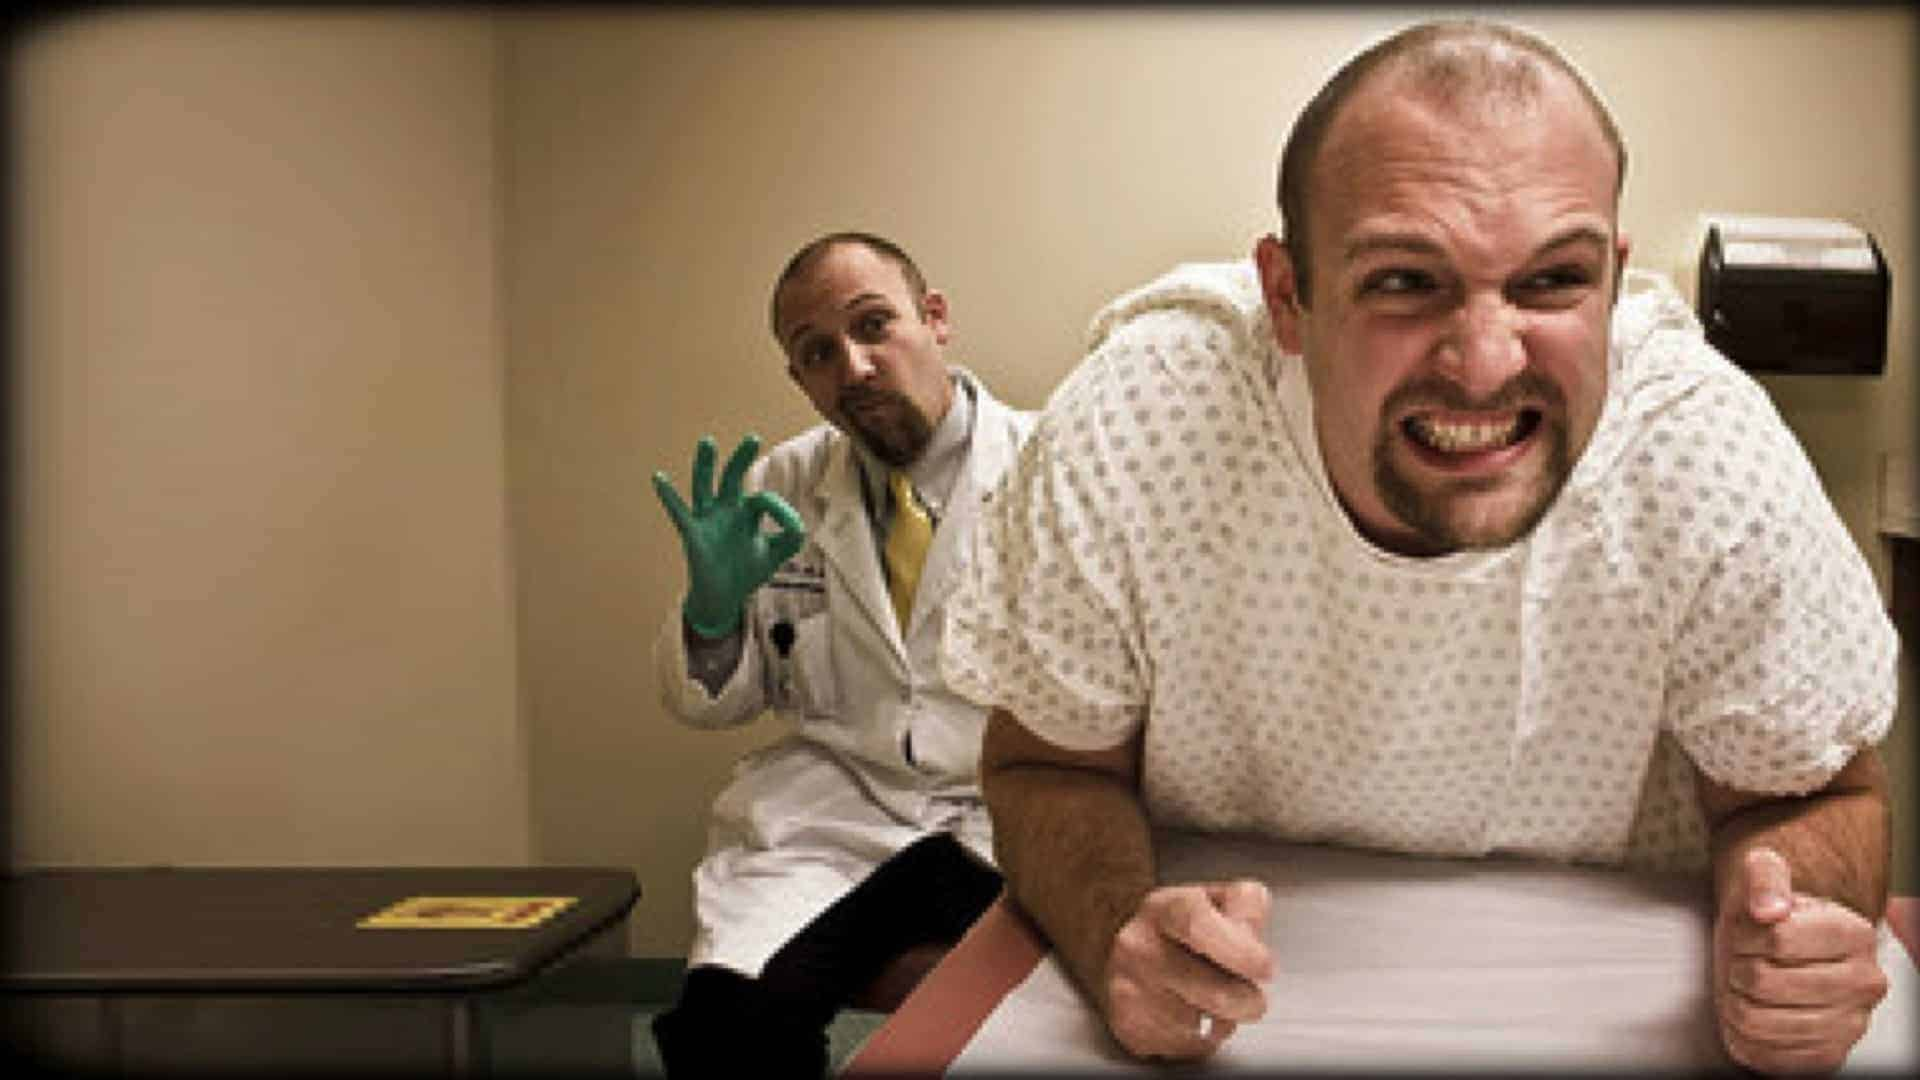 A man is shown with a grimace of pain on his face. He is wearing a surgical gown and is bent forward. A second man, dressed as a doctor in surgical gloves is behind him. His left arm is out of sight; hidden by the body of the first man.